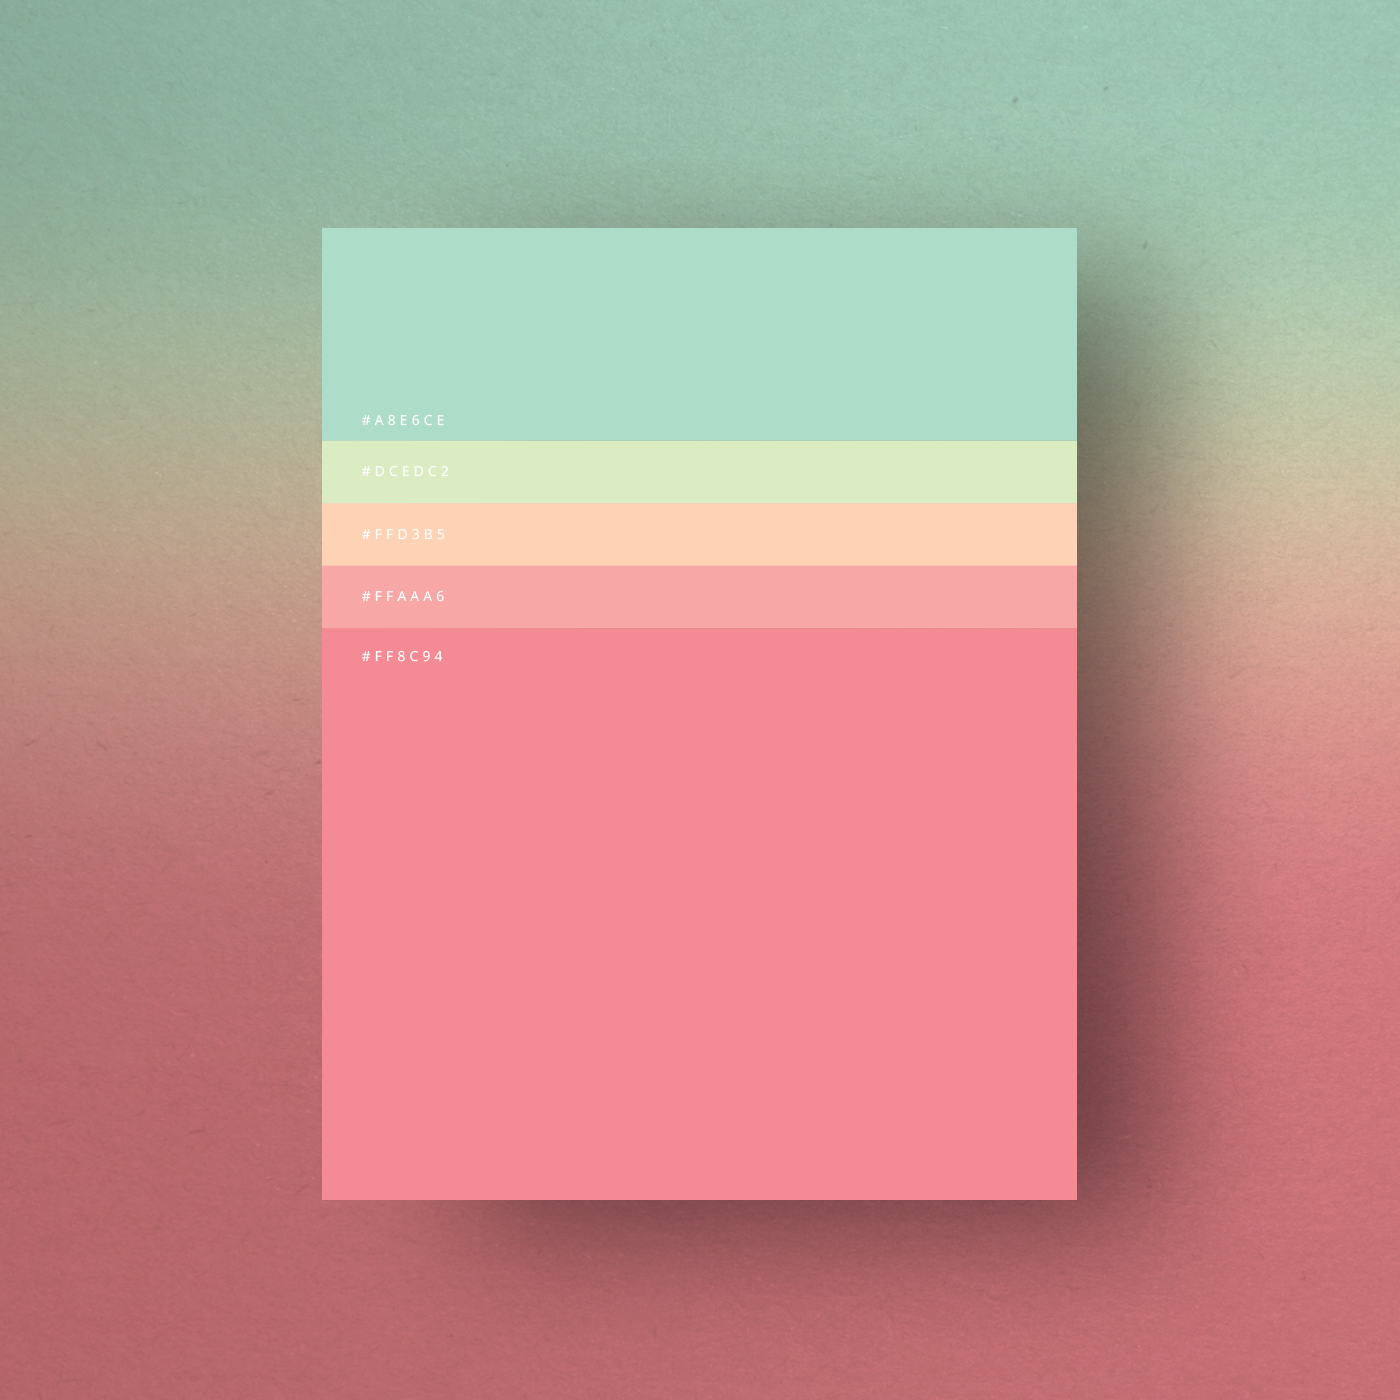 Design Crush | A Minimalist poster color palette